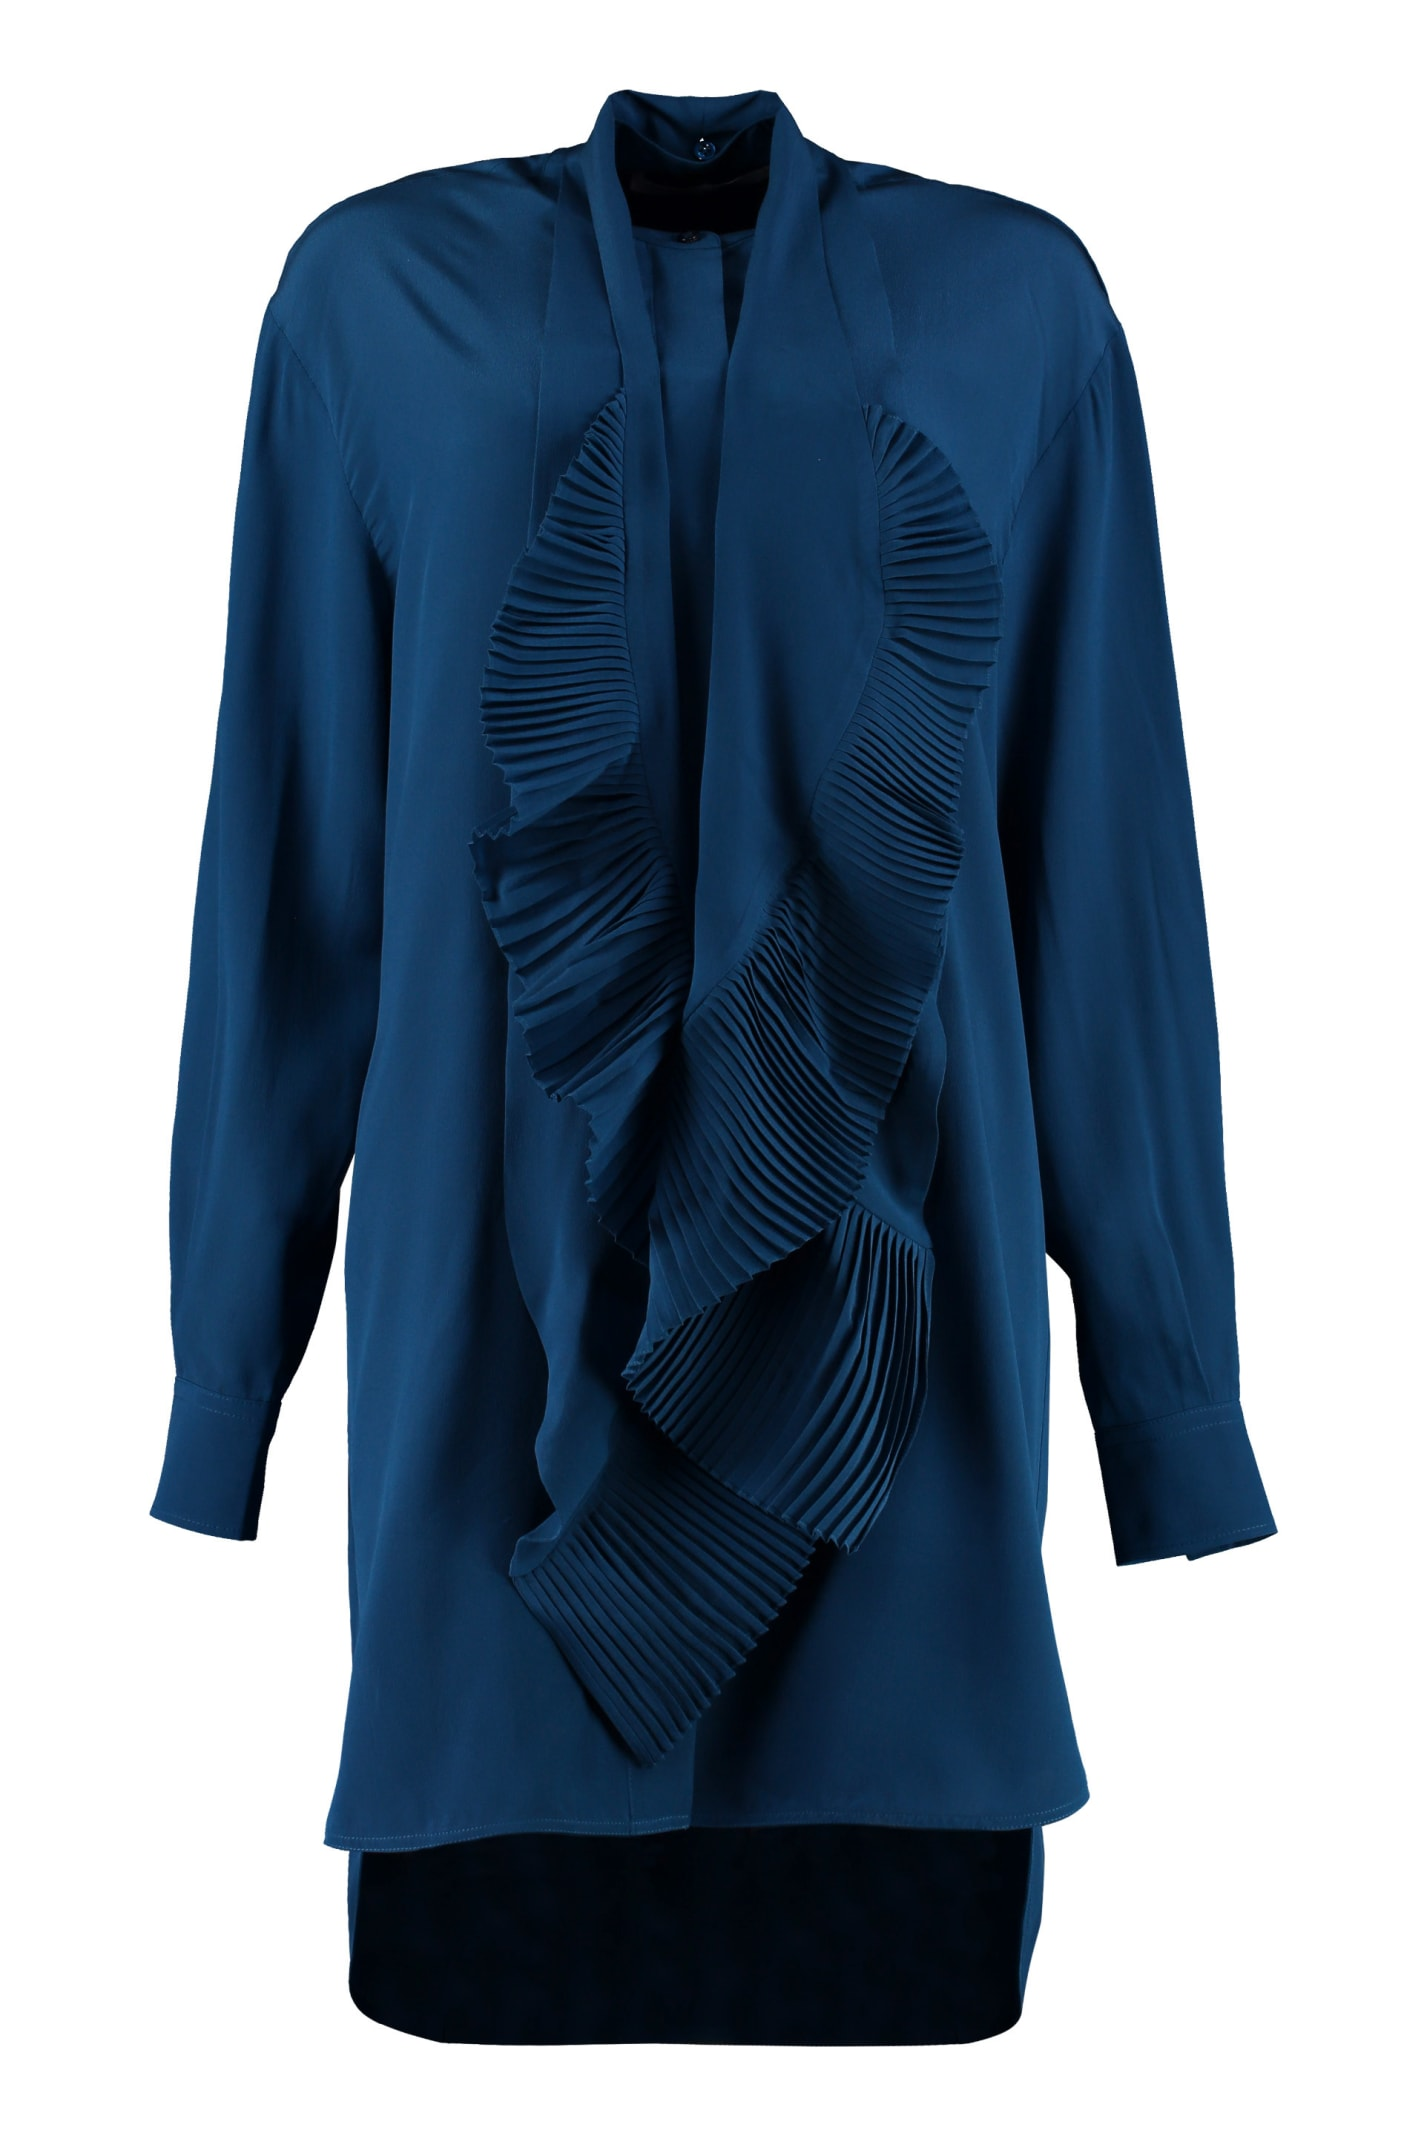 Givenchy Pleated Scarf Silk Shirtdress